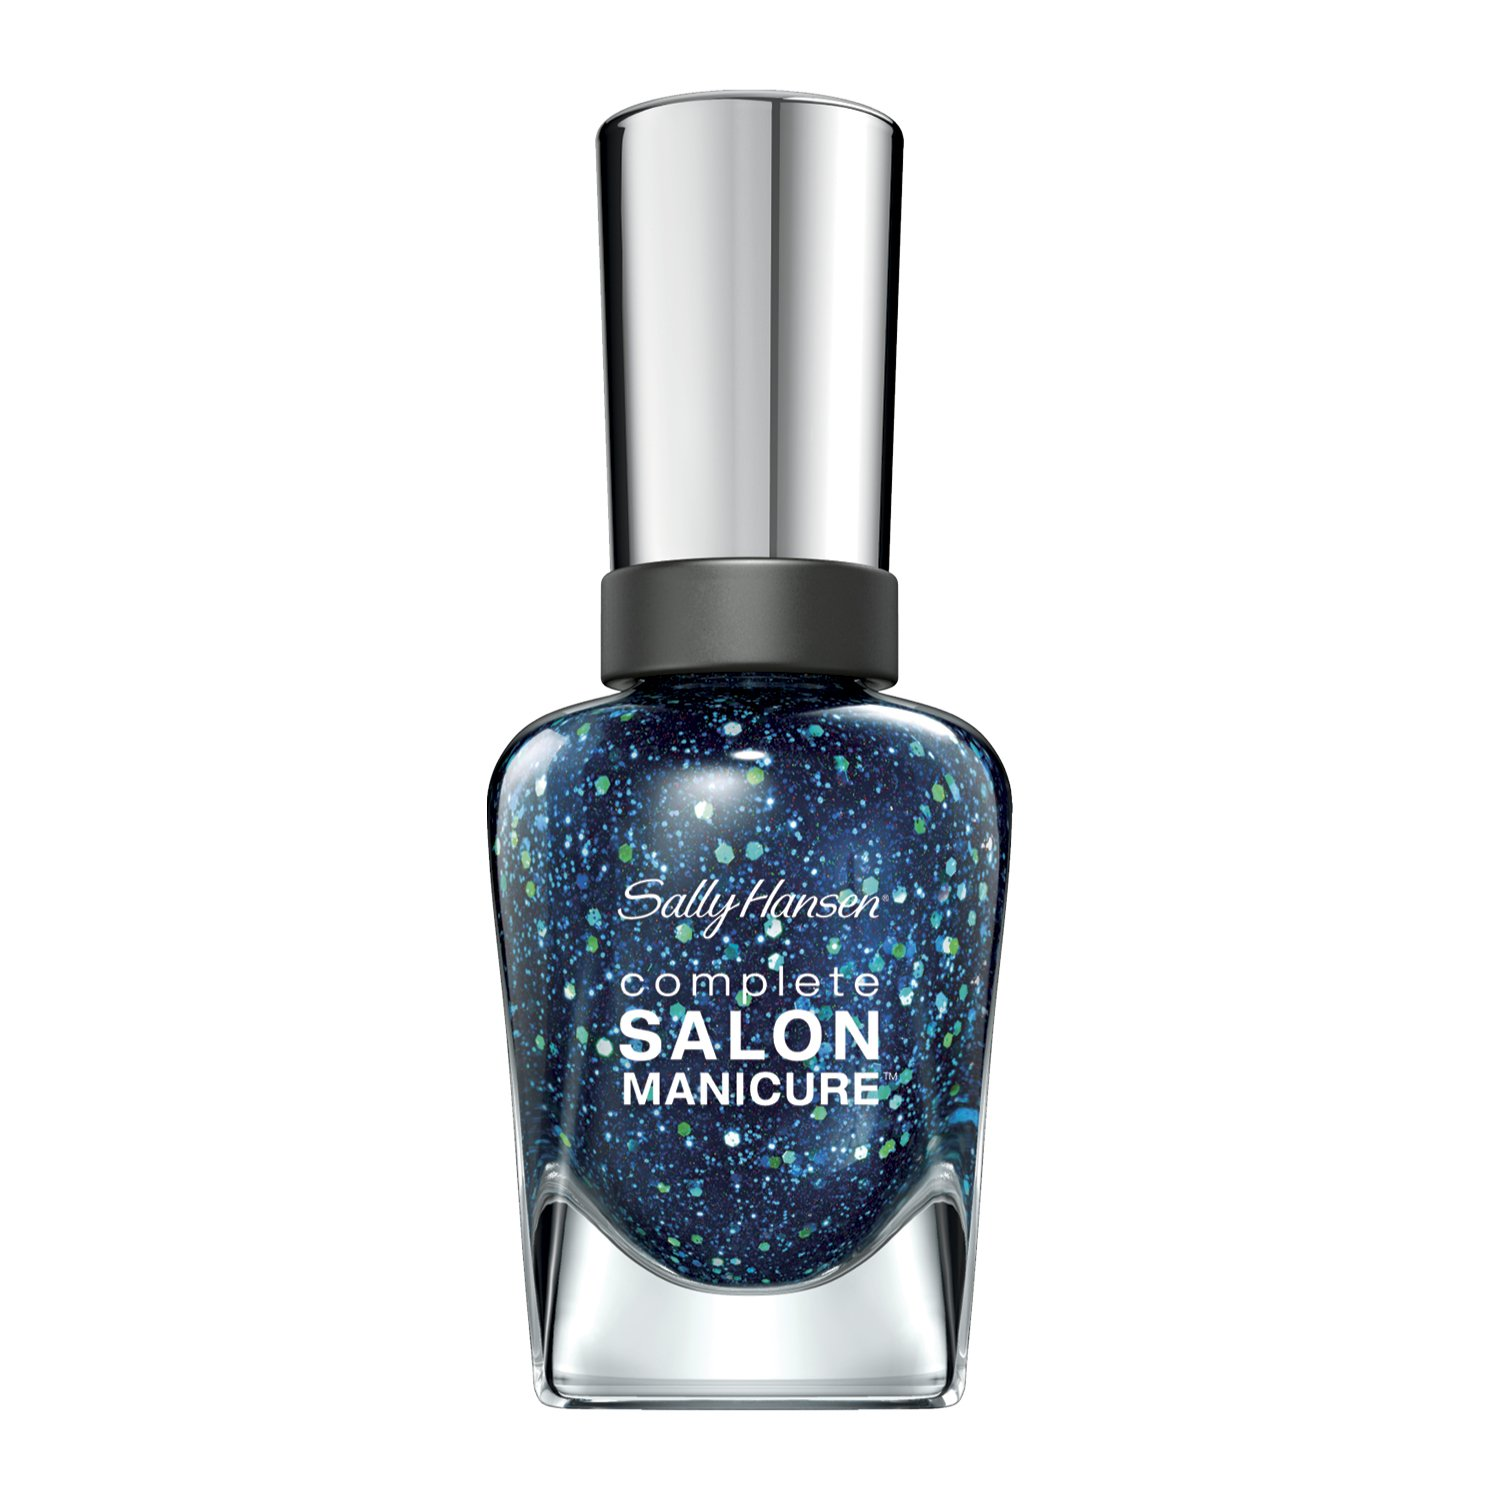 SALLY HANSEN COMPLETE SALON MANICURE NAIL COLOR #560 MERMAID'S TALE 30535682560